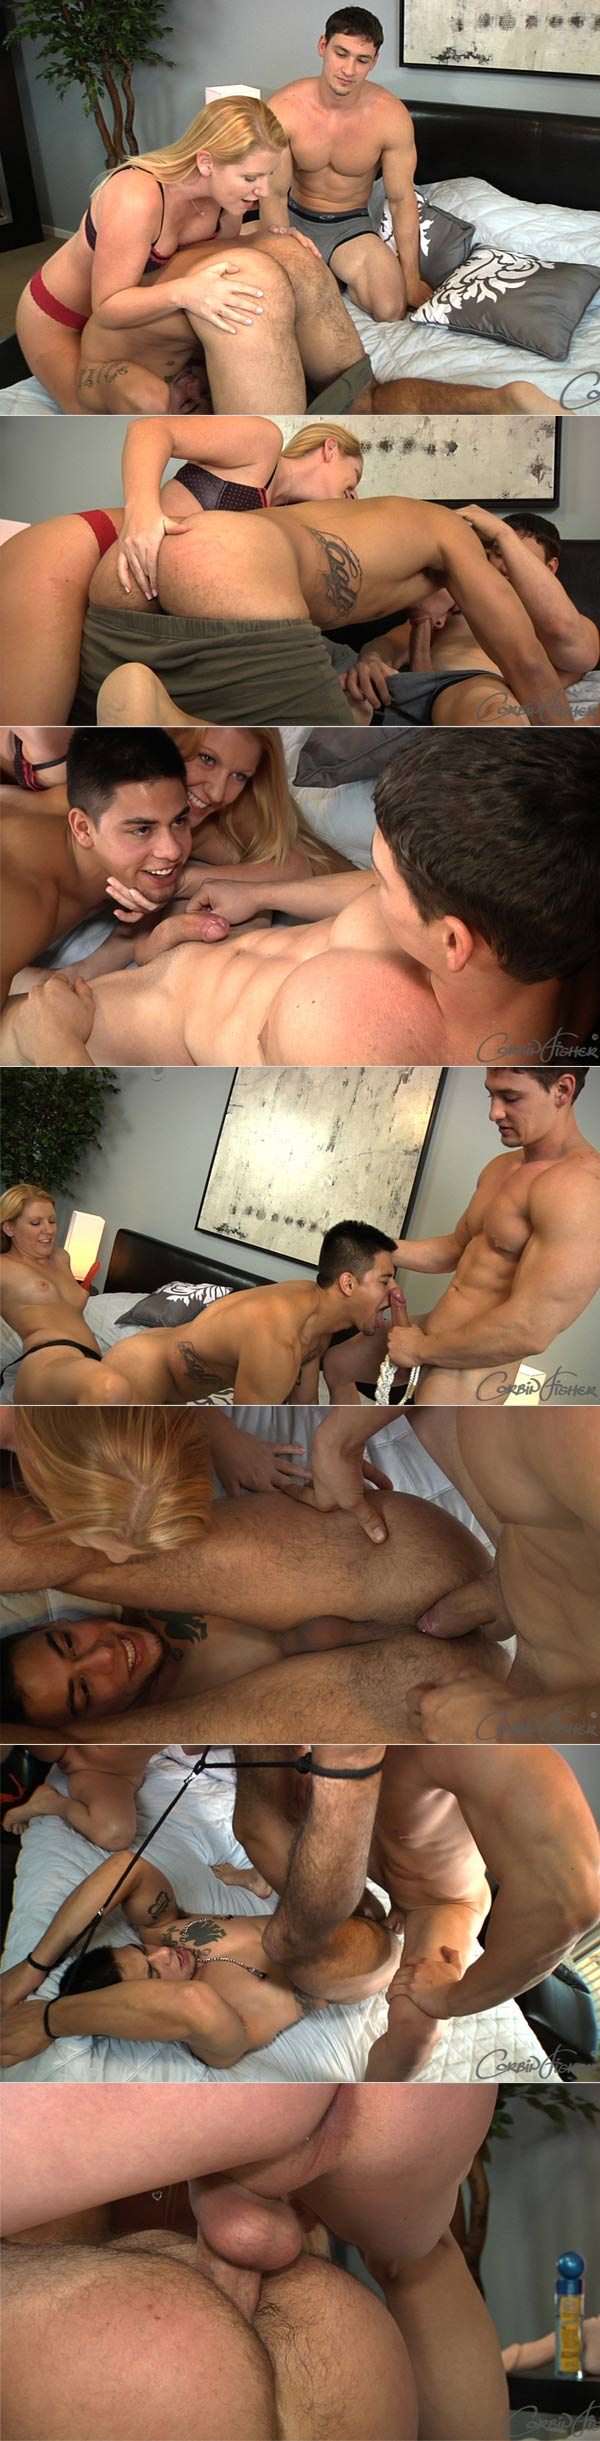 Ashley & Cain (Dominate Marc) at AmateurCollegeSex